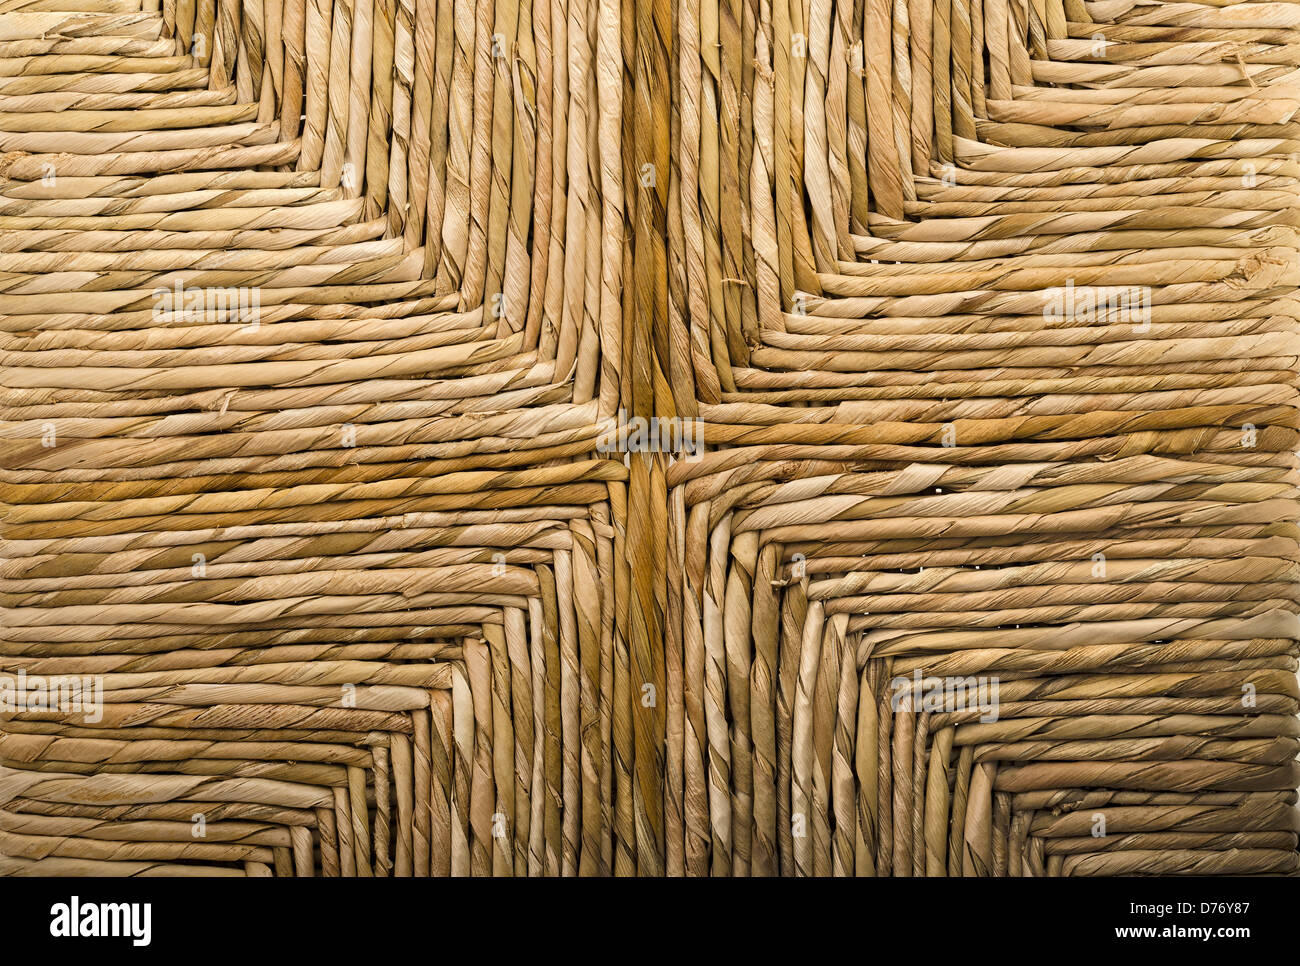 Close Up of a Woven Wicker Basket Chair - Stock Image